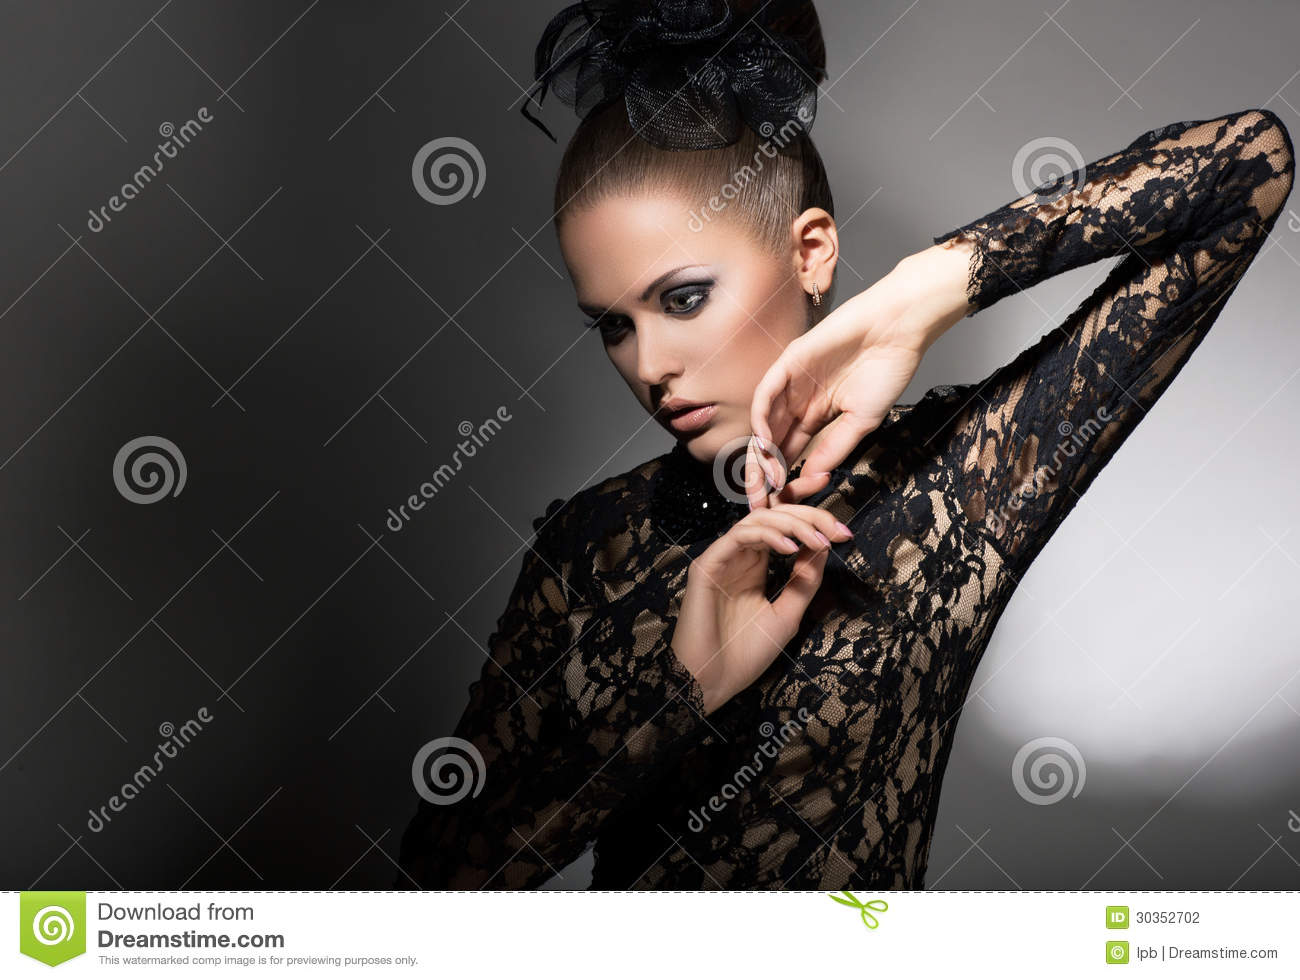 Femininity. Attractive Stylized Woman in Black Dress with Bow-knot. Neatness